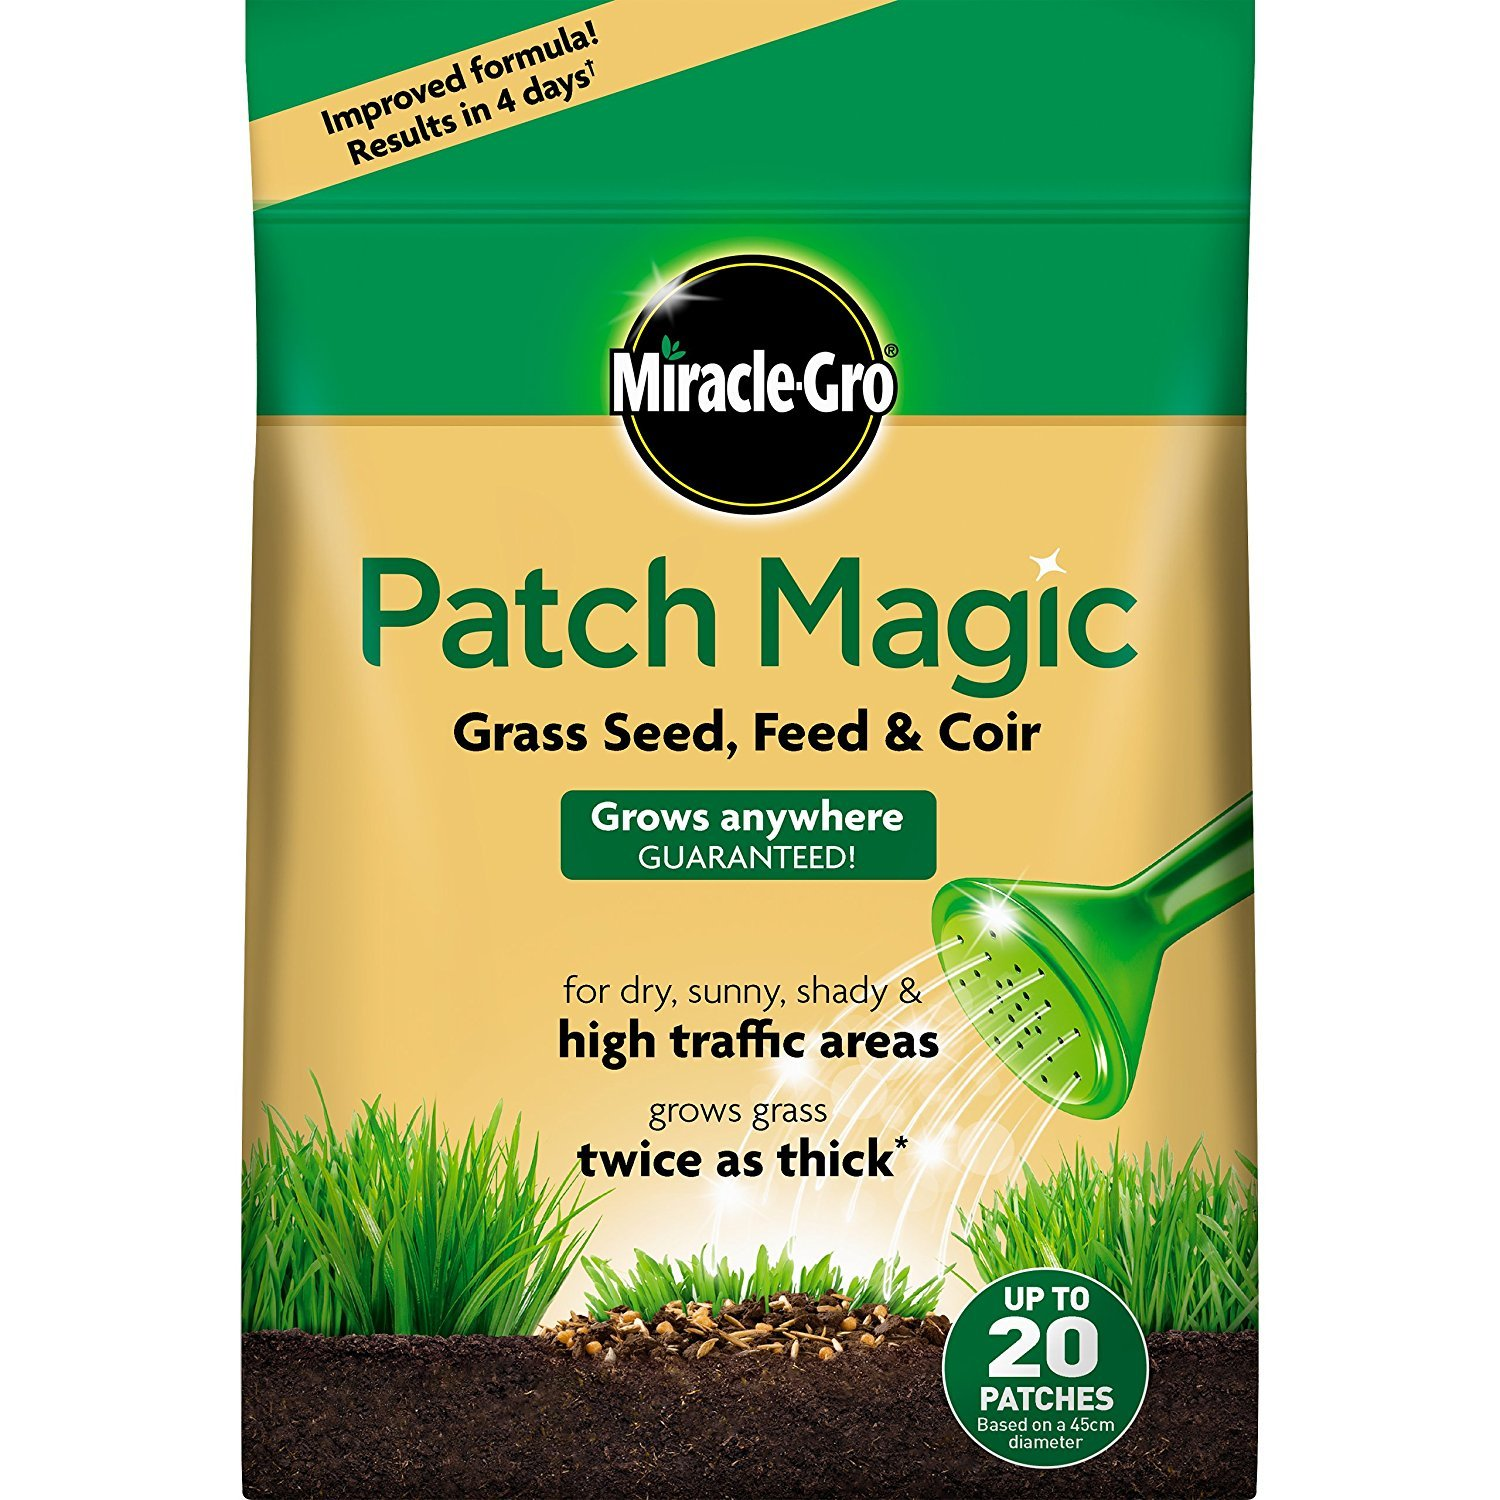 Miracle-Gro Patch Magic Grass Seed, Feed & Coir 1.5kg bag Scotts Miracle-Gro